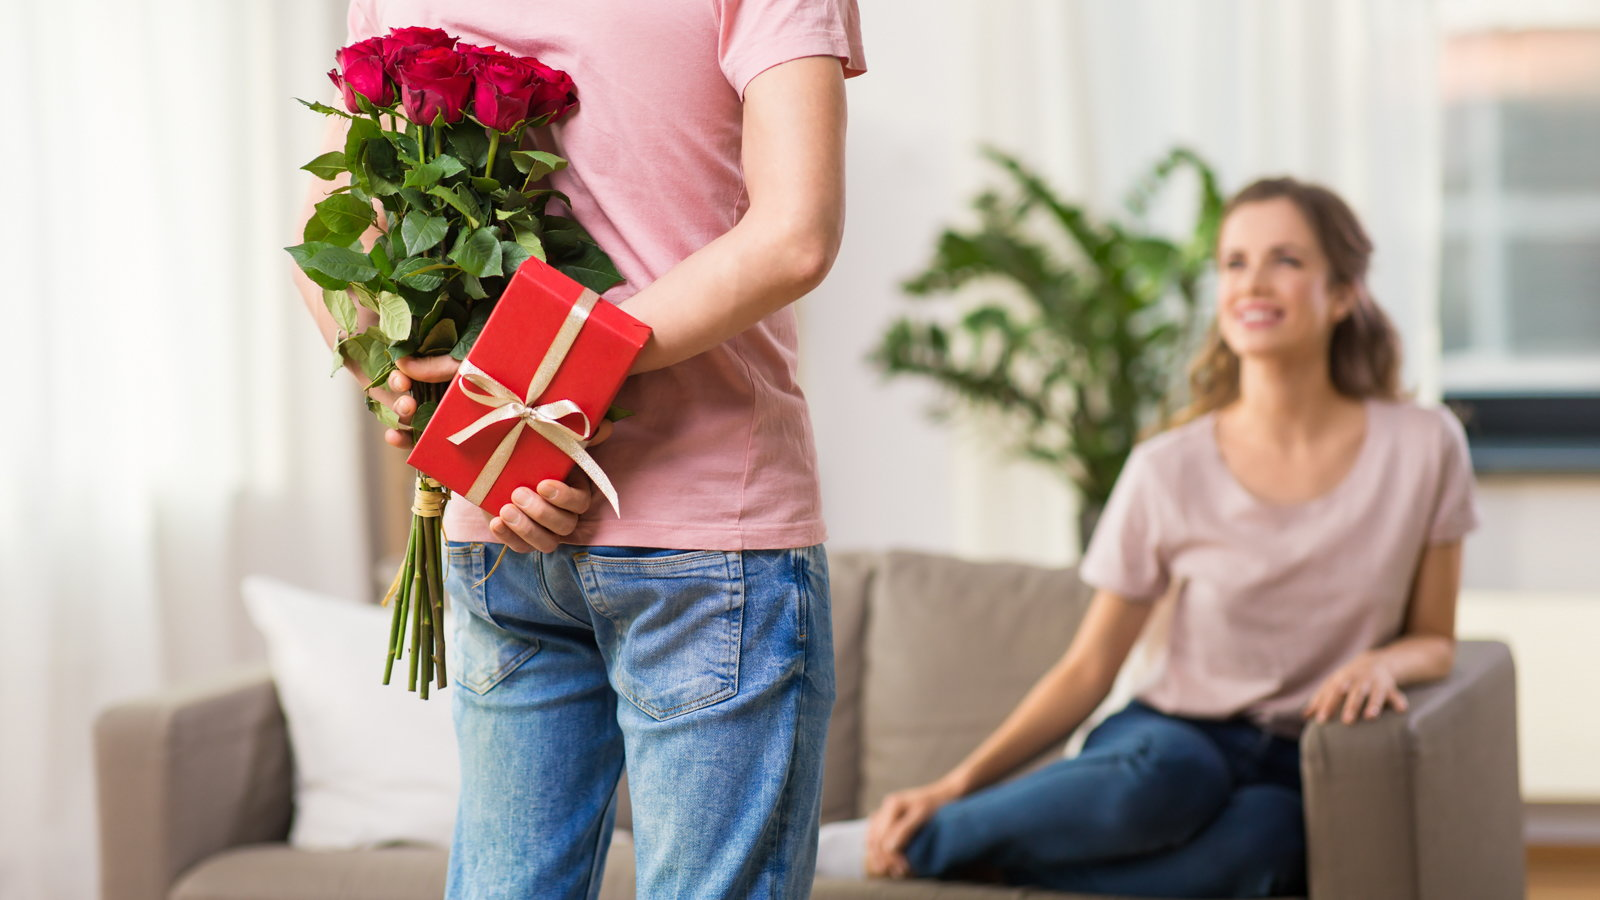 man giving Valentine's gift to wife